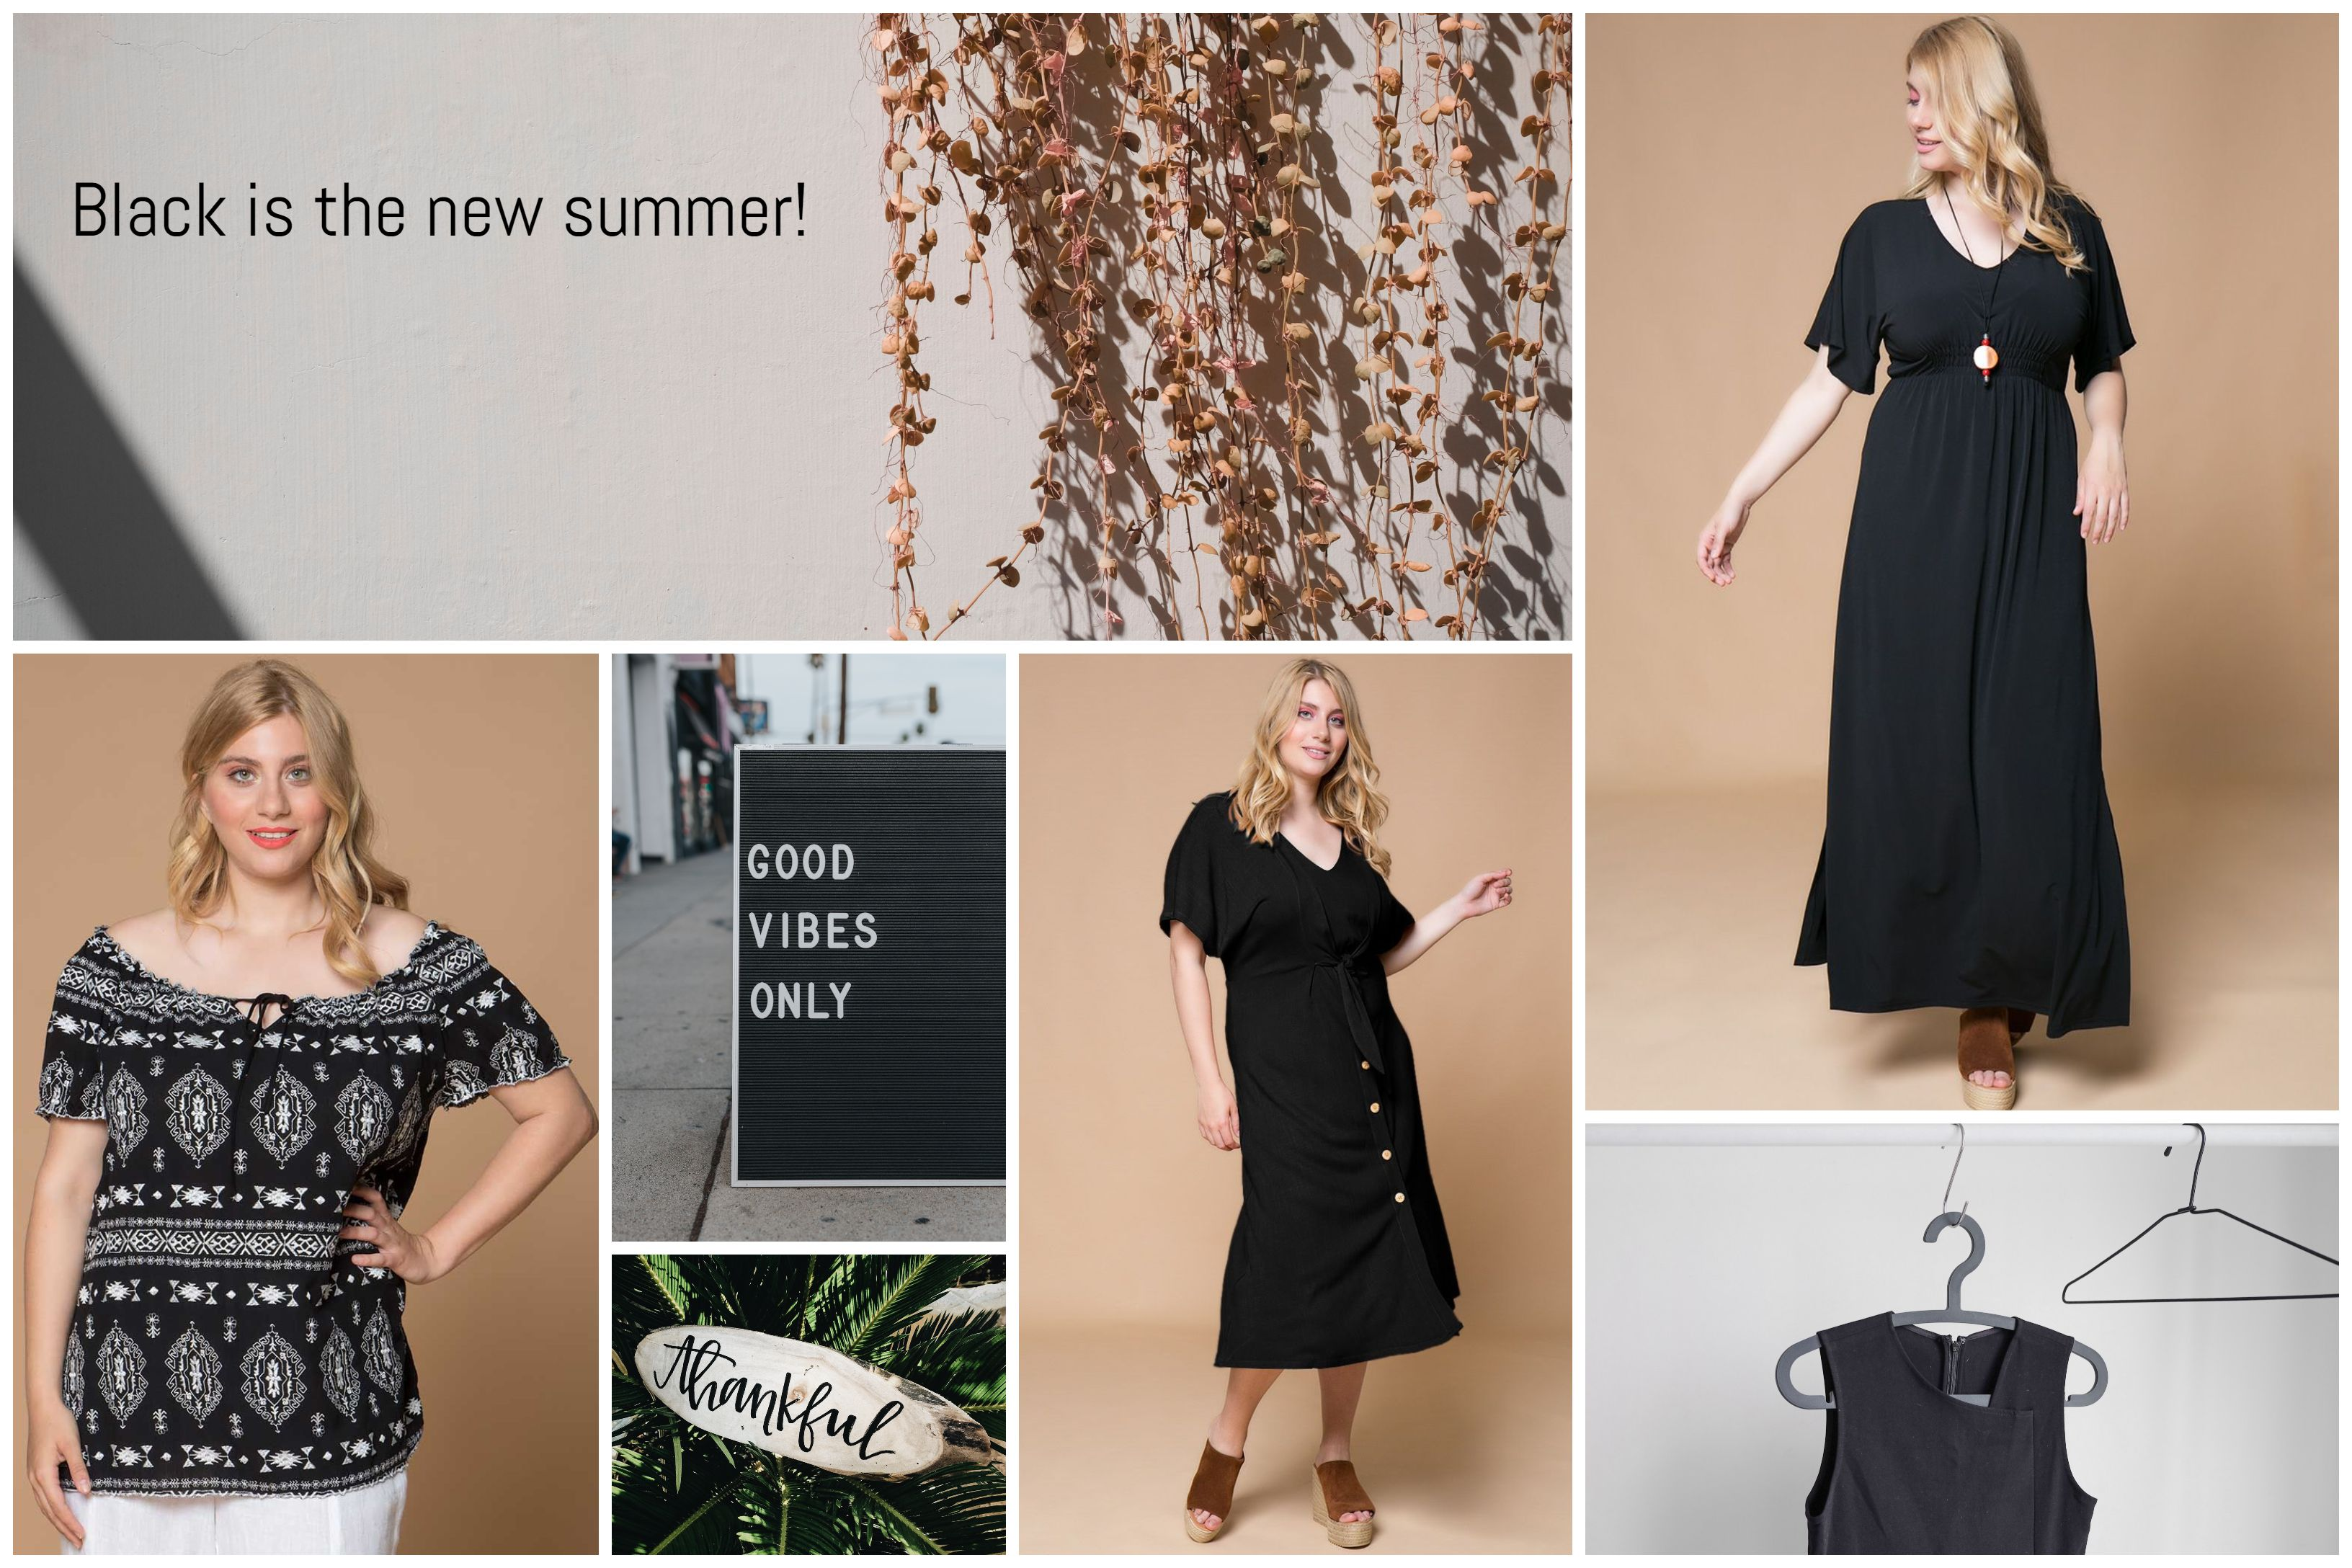 Black is the new summer!